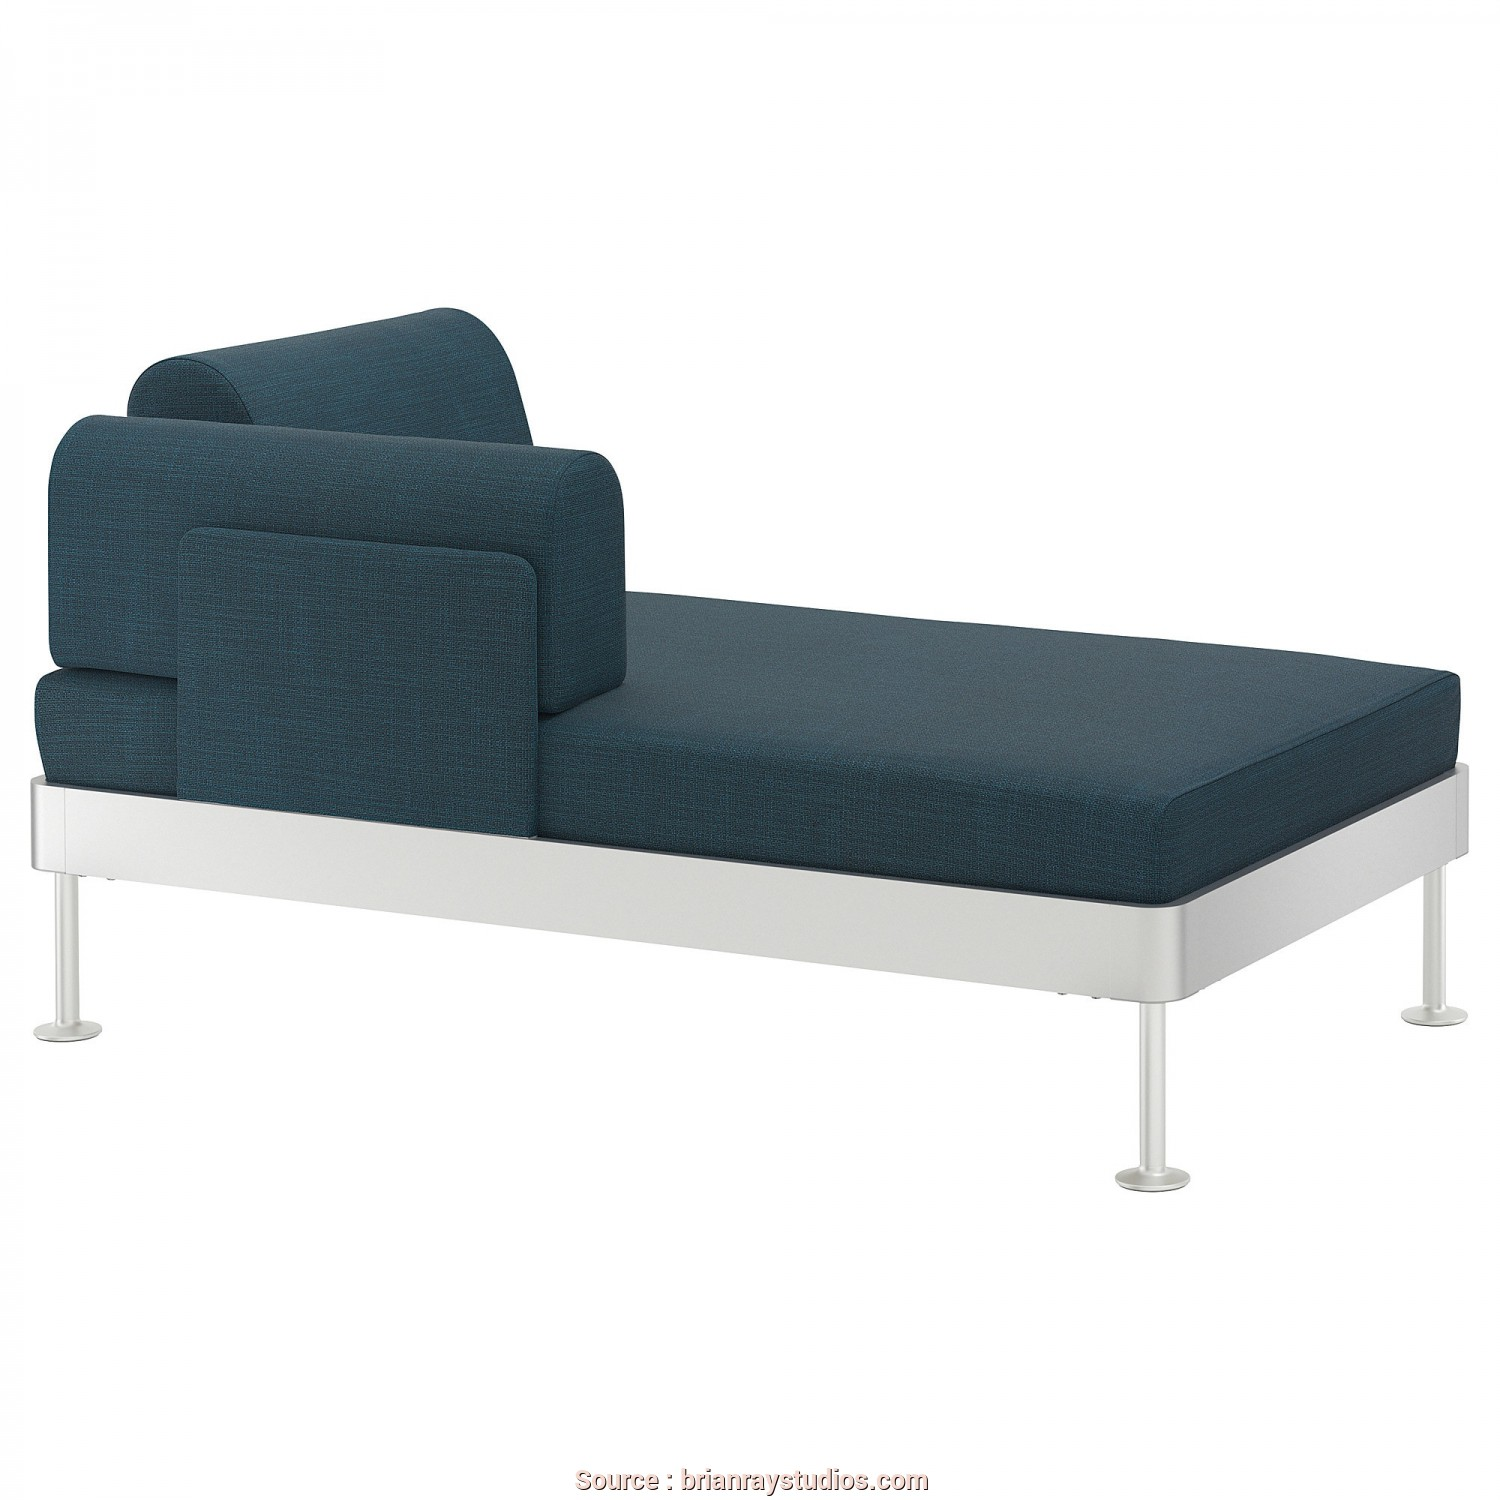 Divano Ikea Kivik, Chaise Longue, Casuale ... Delaktig Chaise Longue With Armrest Hillared Dark Blue Ikea Concerning Ikea Chaise Longue